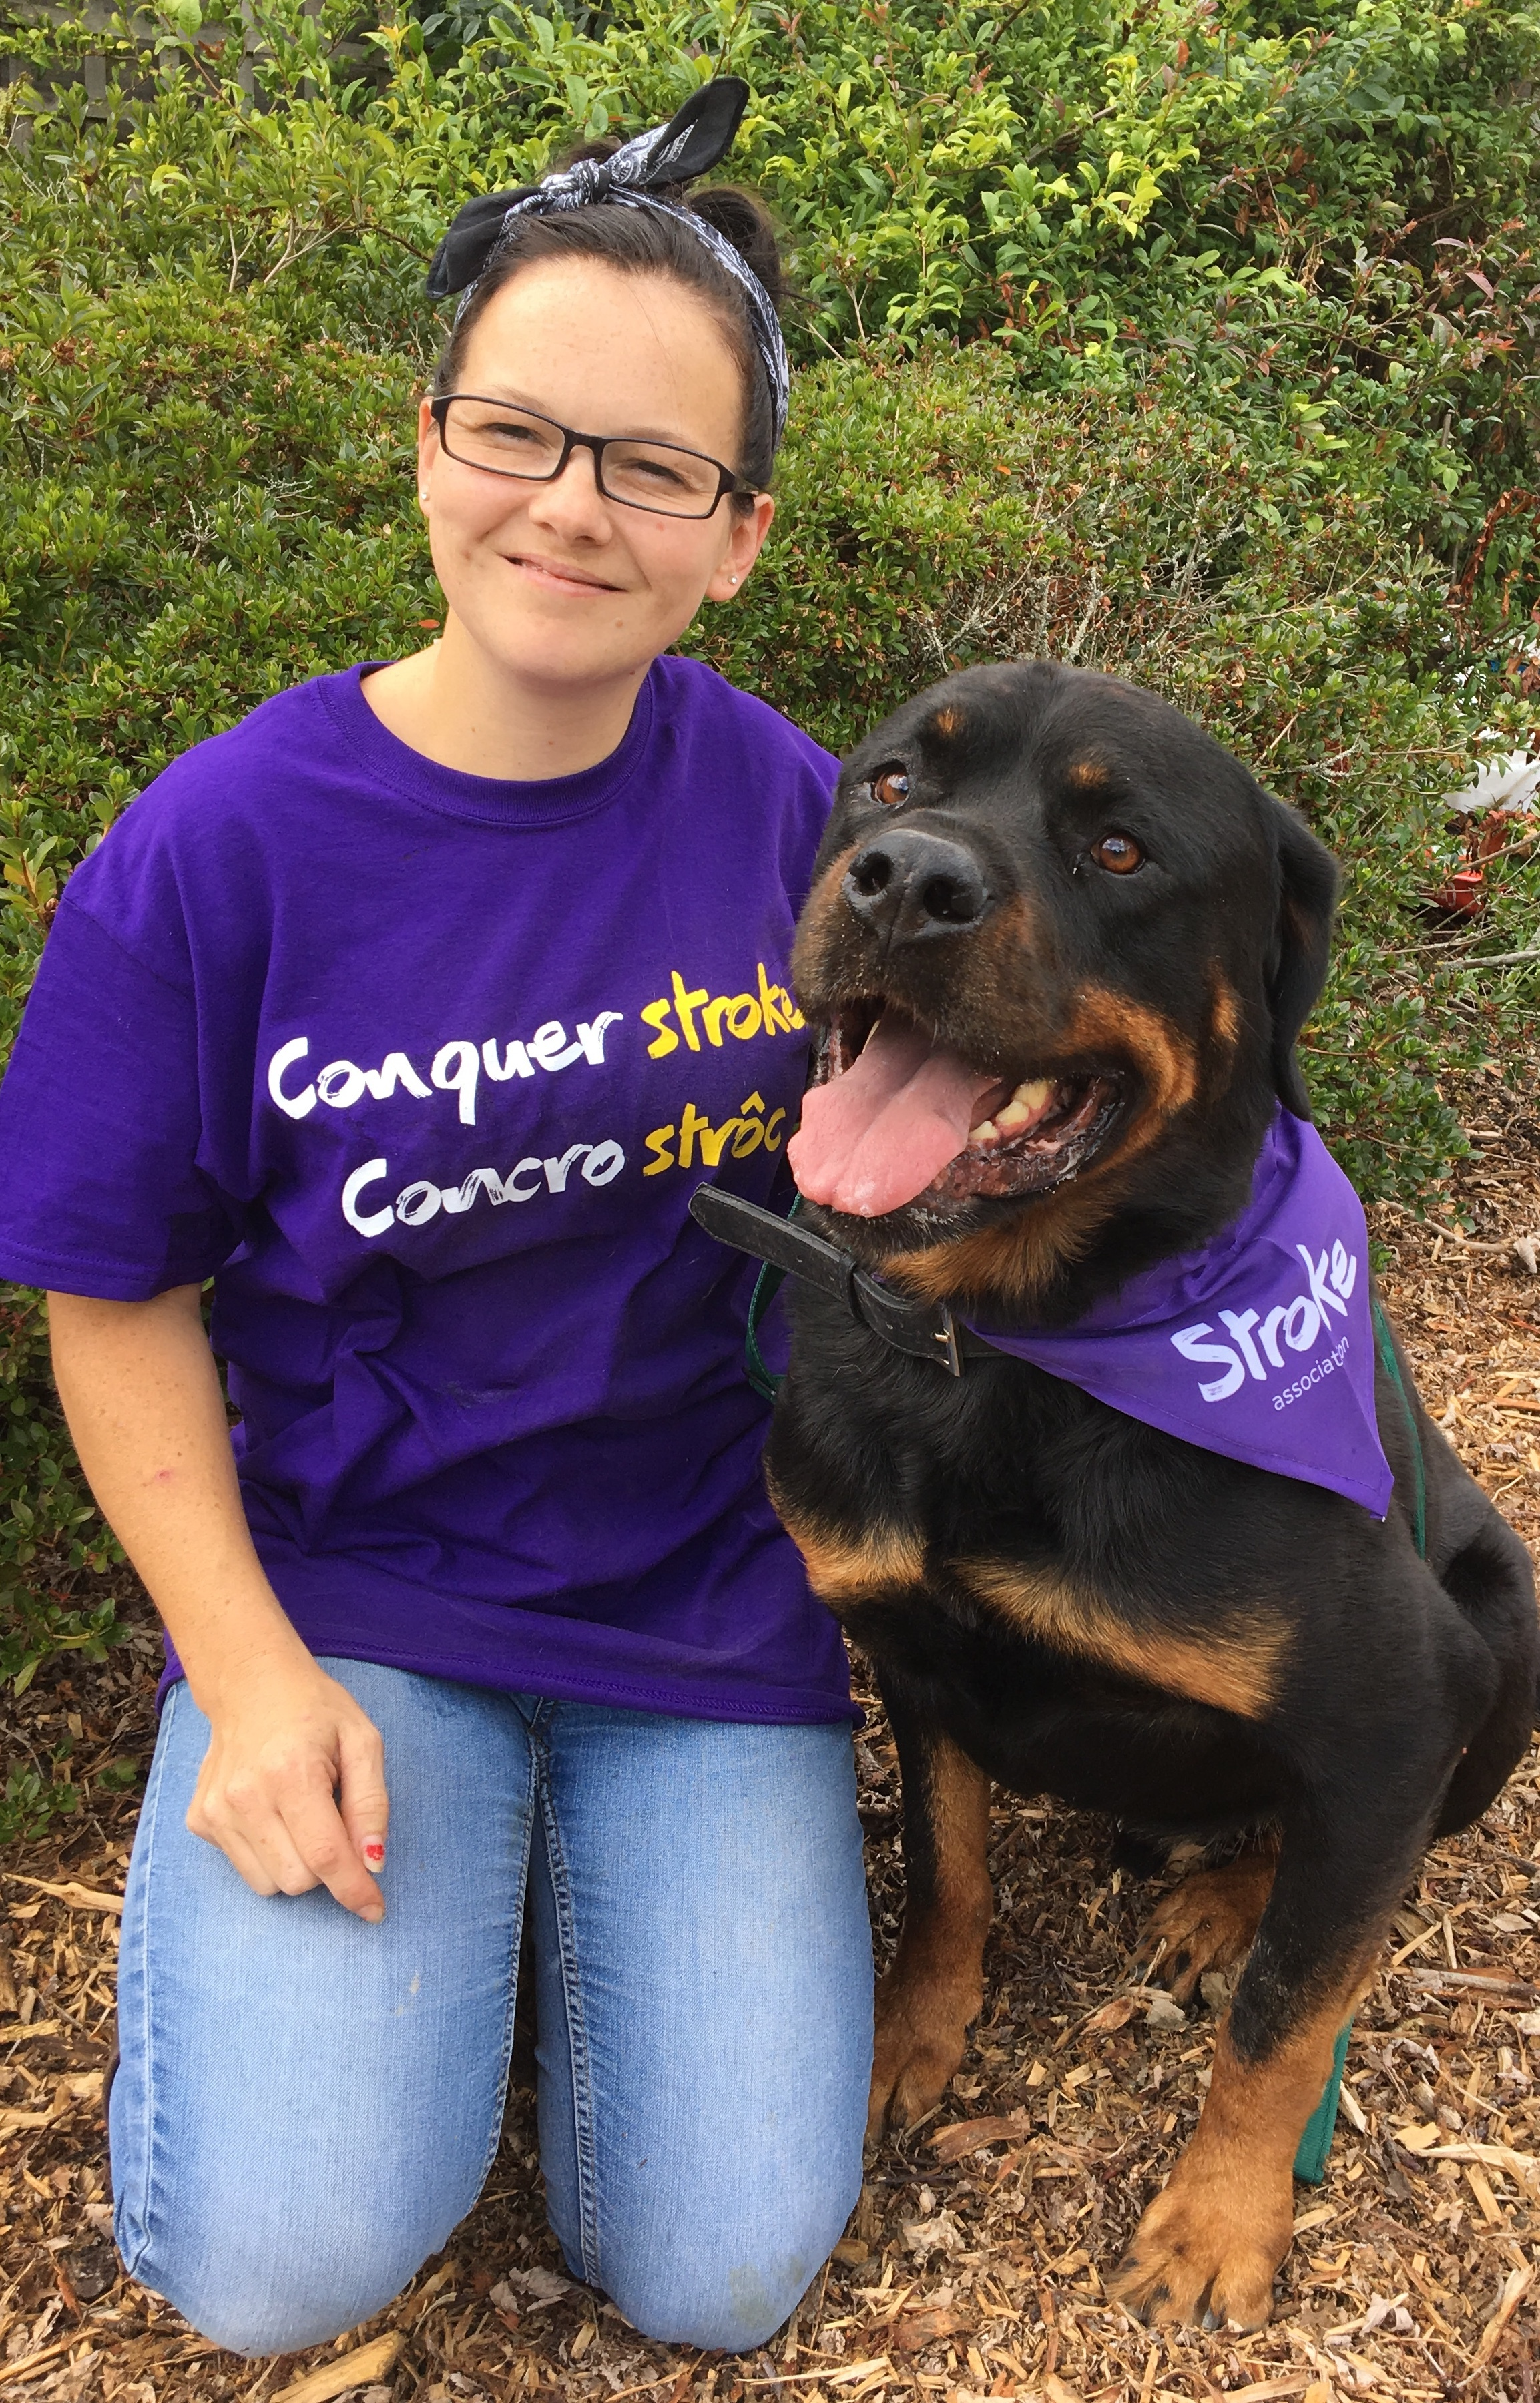 Nikki Cantrill is organising a dog show in aid of the Stroke Association